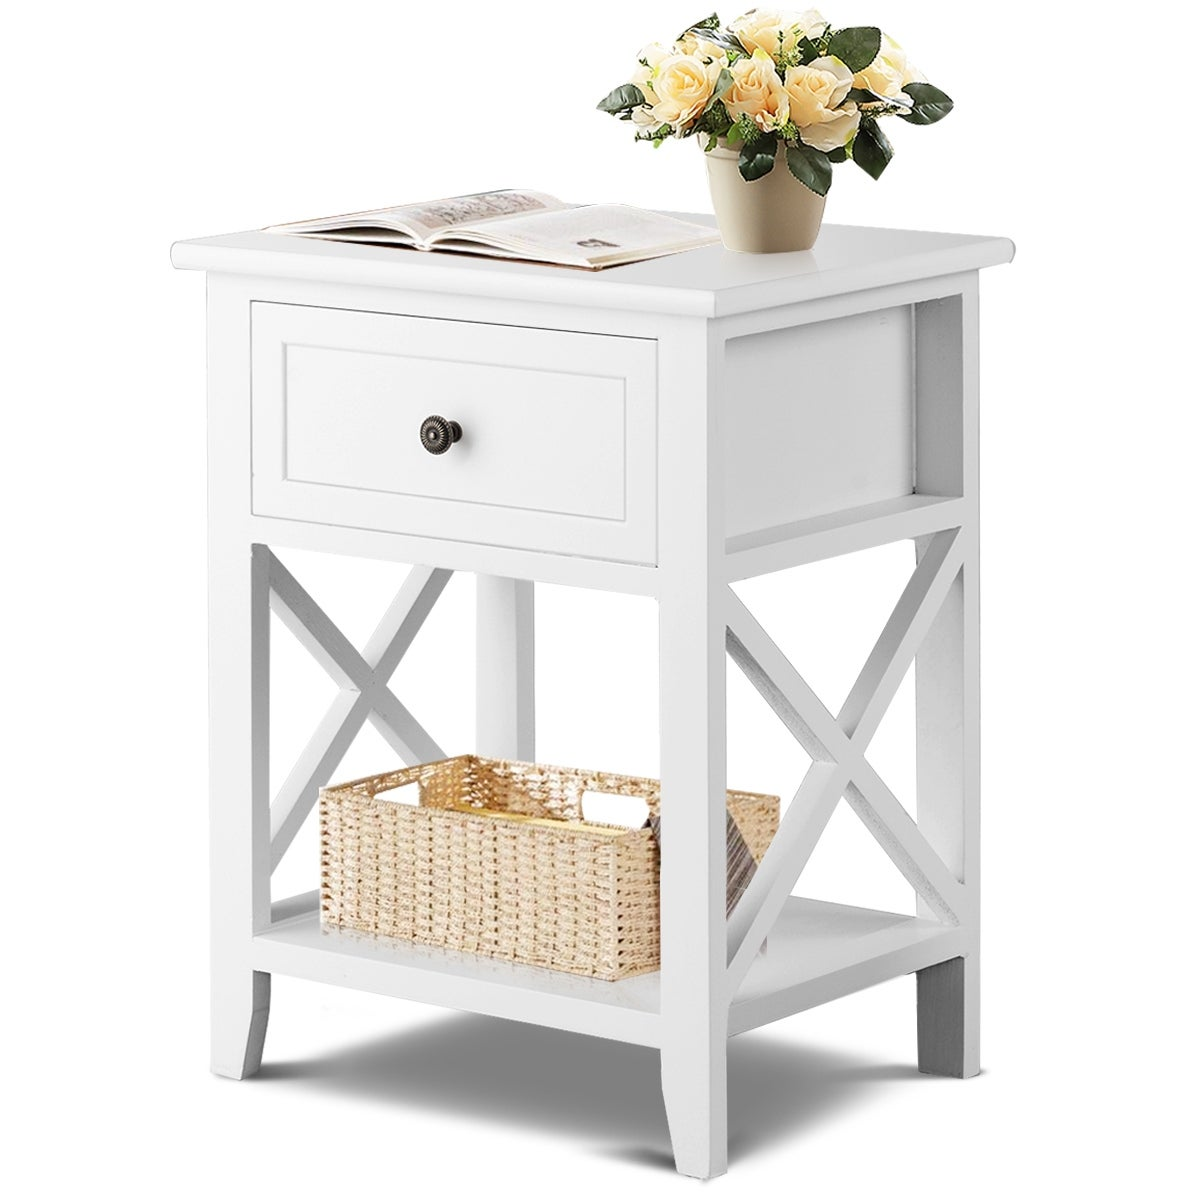 Costway End Bedside Table Nightstand Drawer Storage Room Decor W Bottom Shelf White